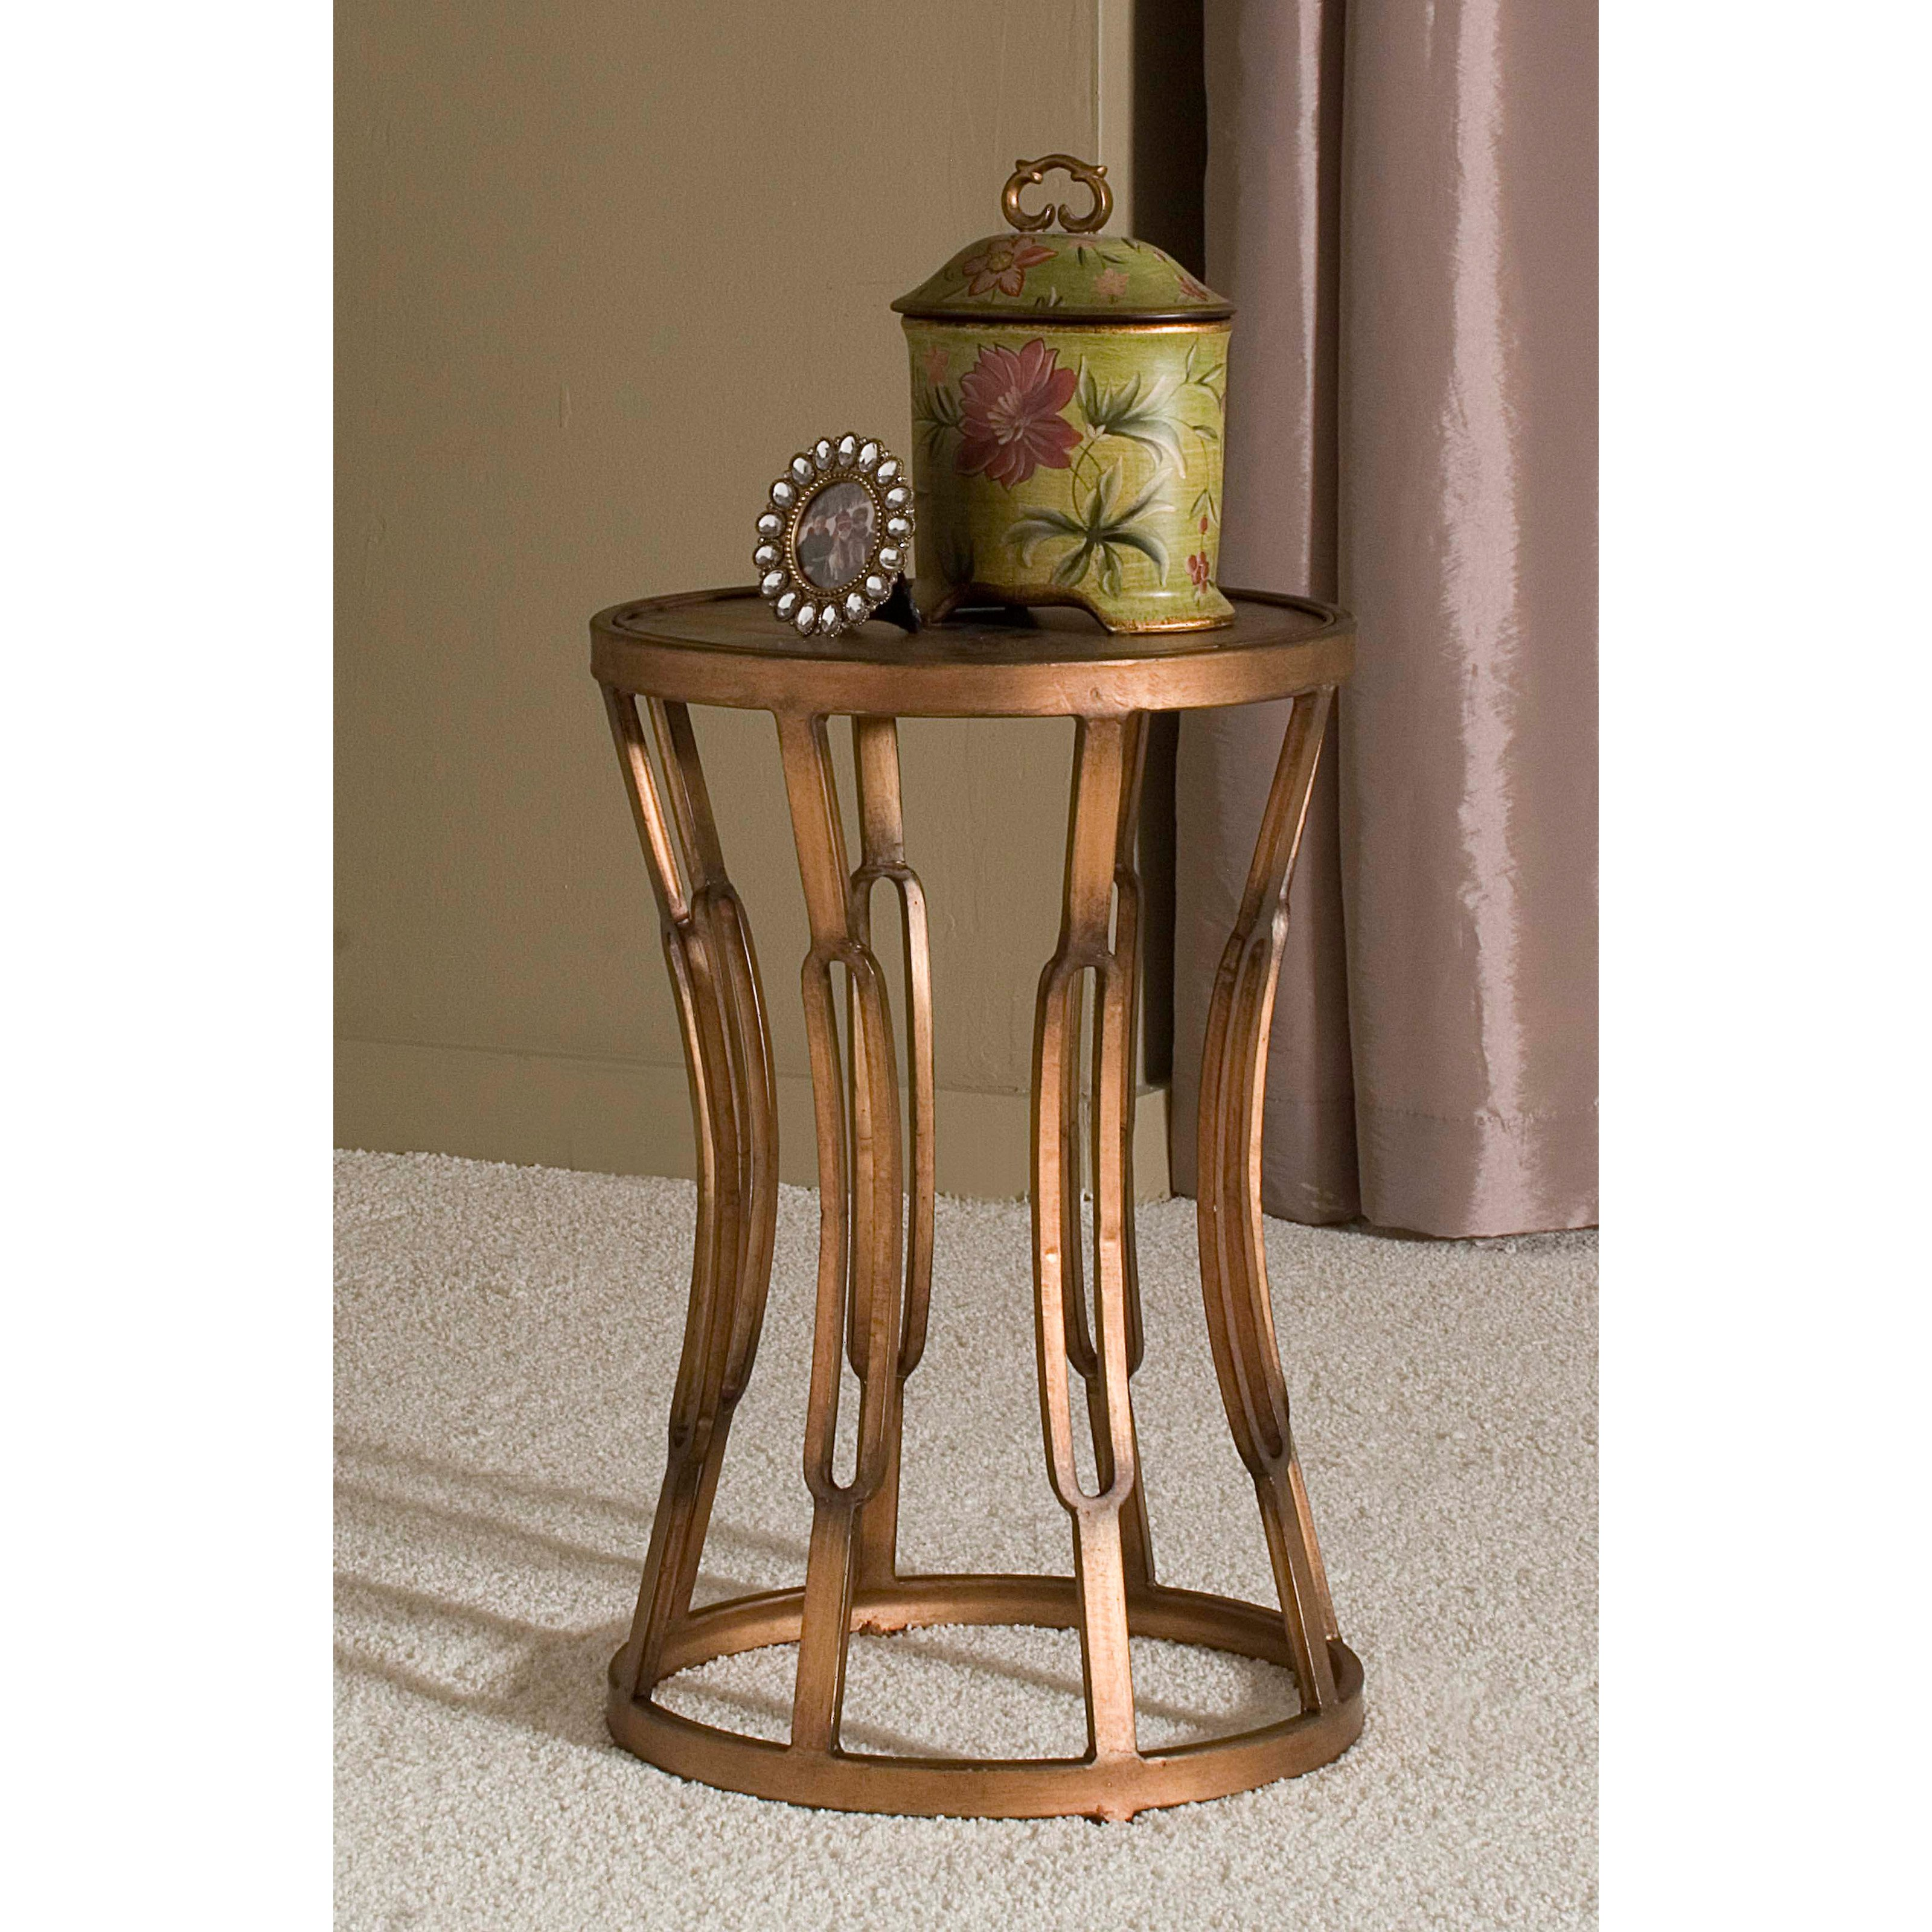 innerspace hourglass accent table antique copper end french threshold drum leick corner desk outdoor furniture chairs wall decor piece round coffee set uttermost samuelle wooden